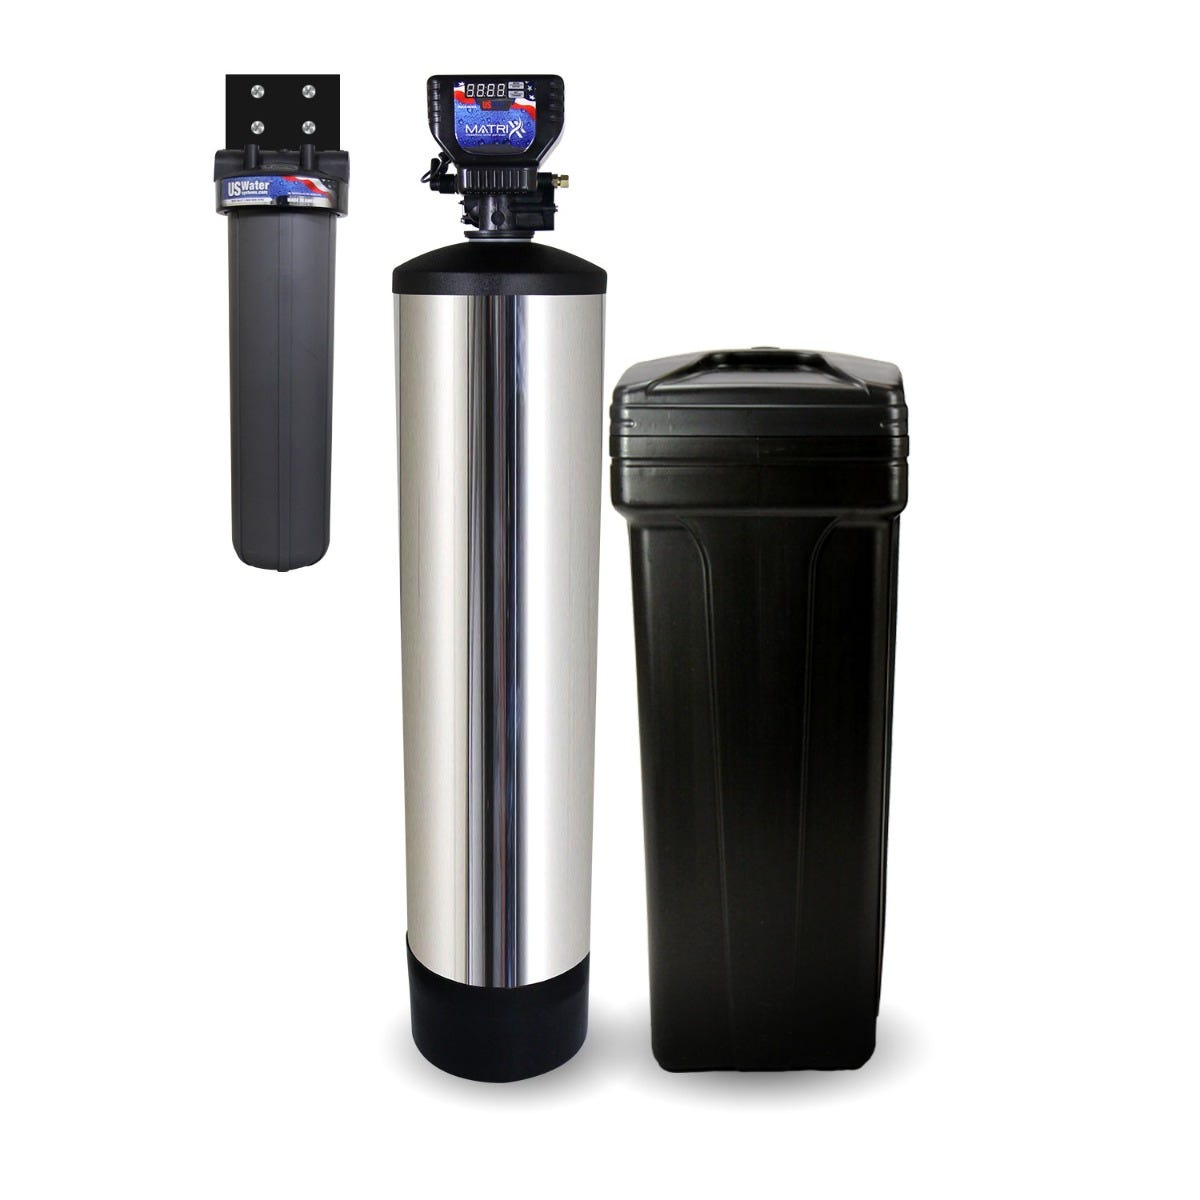 Fusion NLT Professional-Grade Metered Water Softener